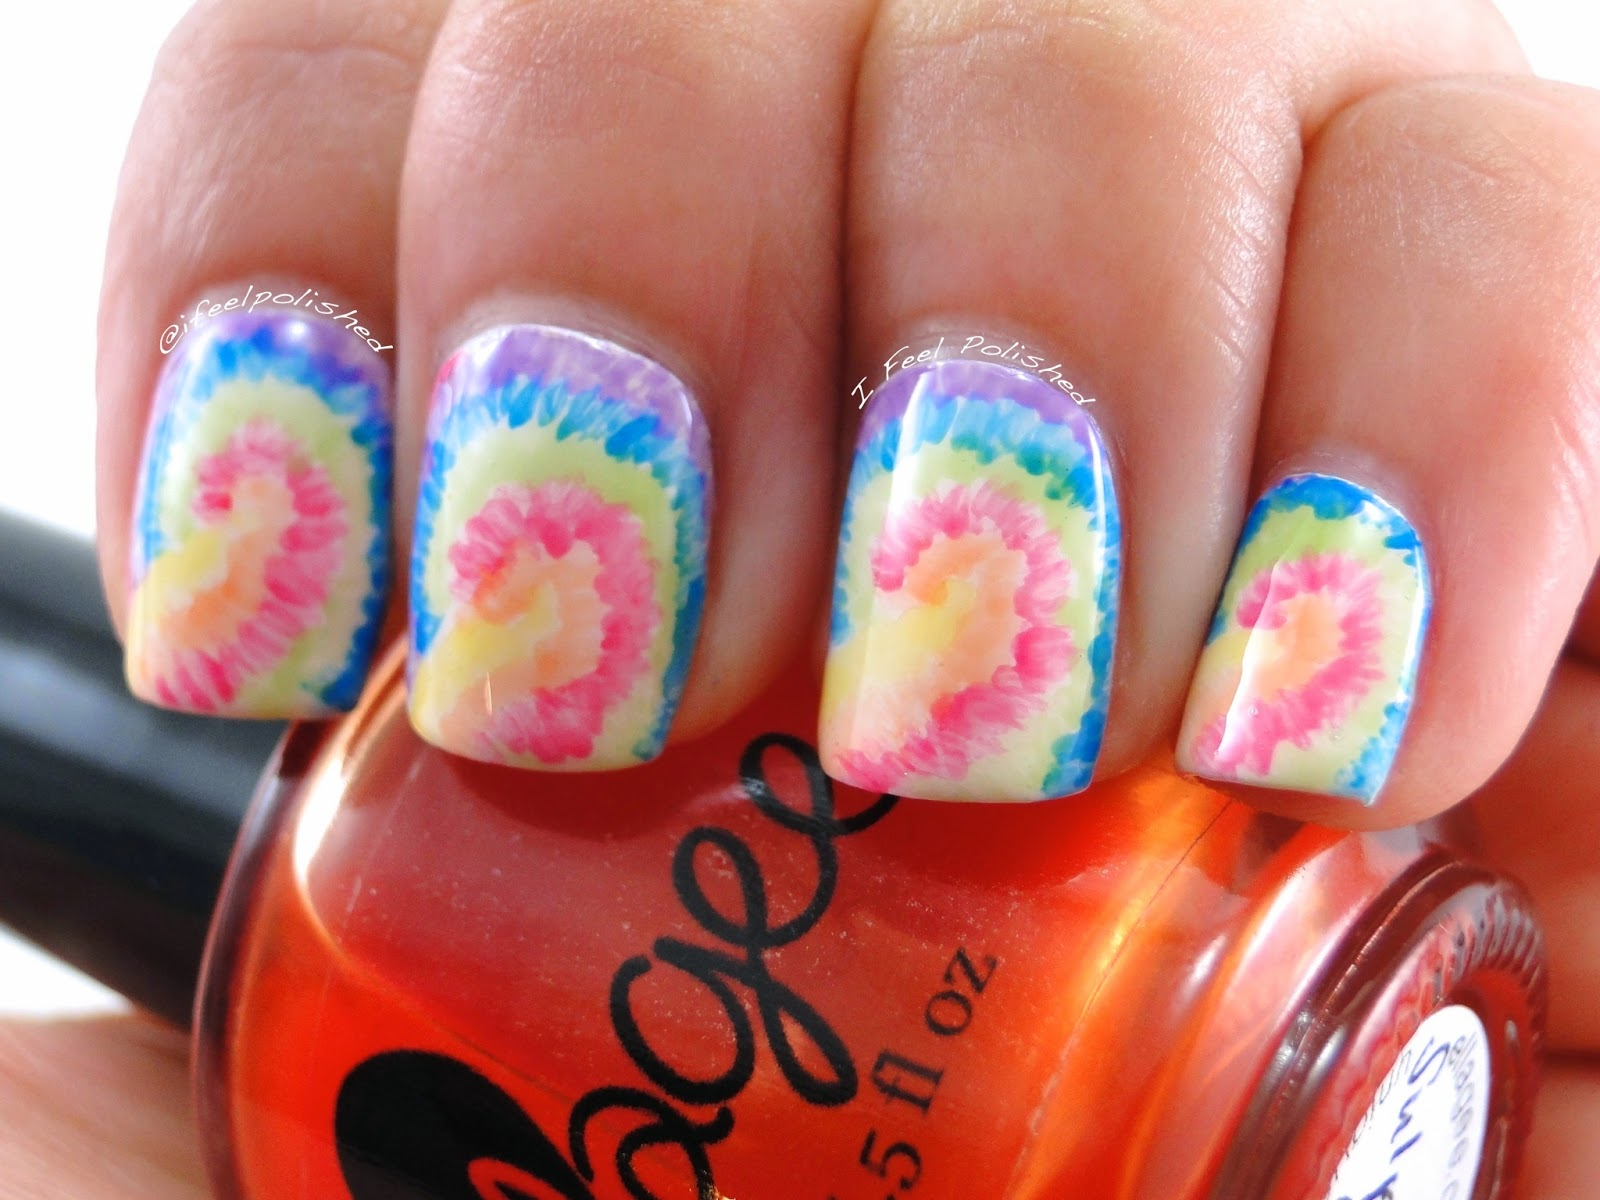 Jelly Polish Nail Art